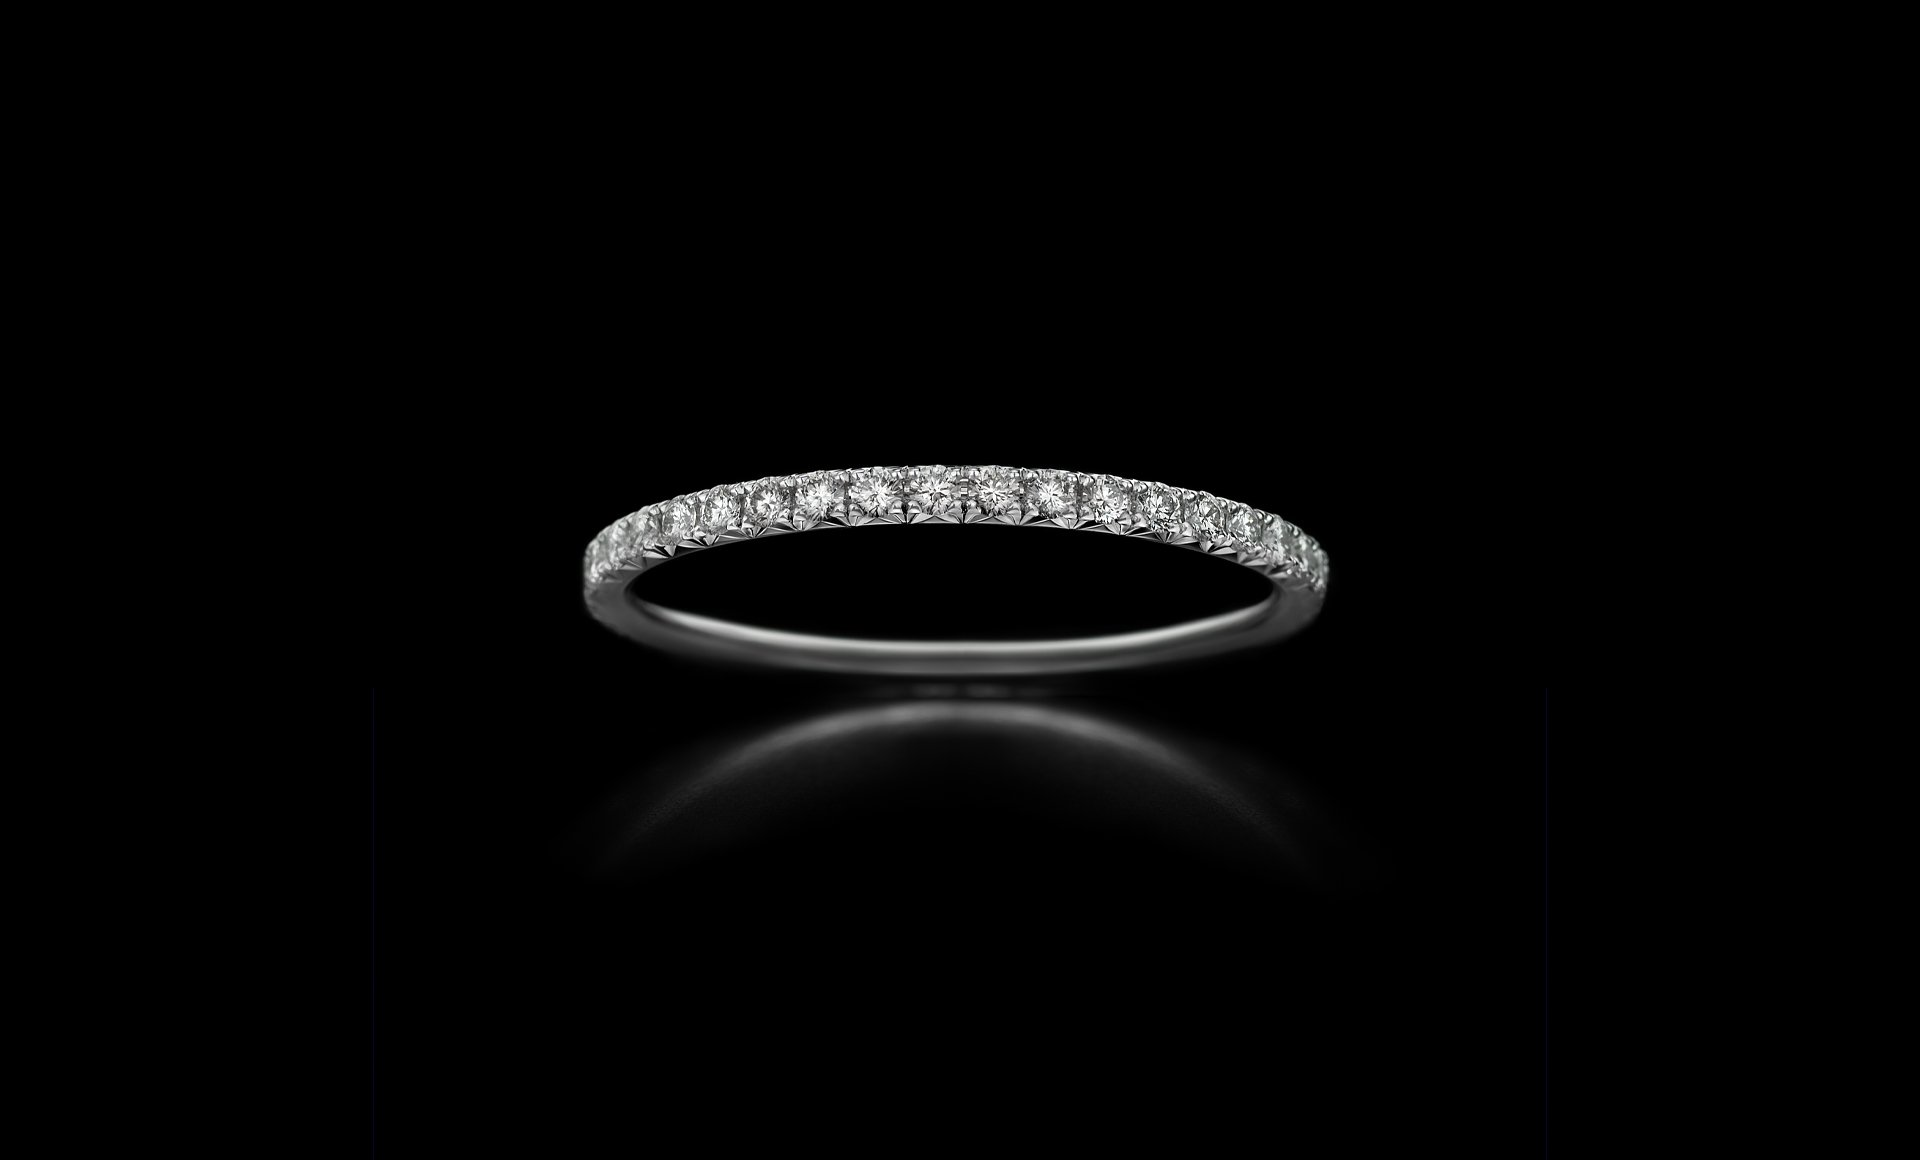 Montluc - Halo No 5 diamond ring, viewed from the front